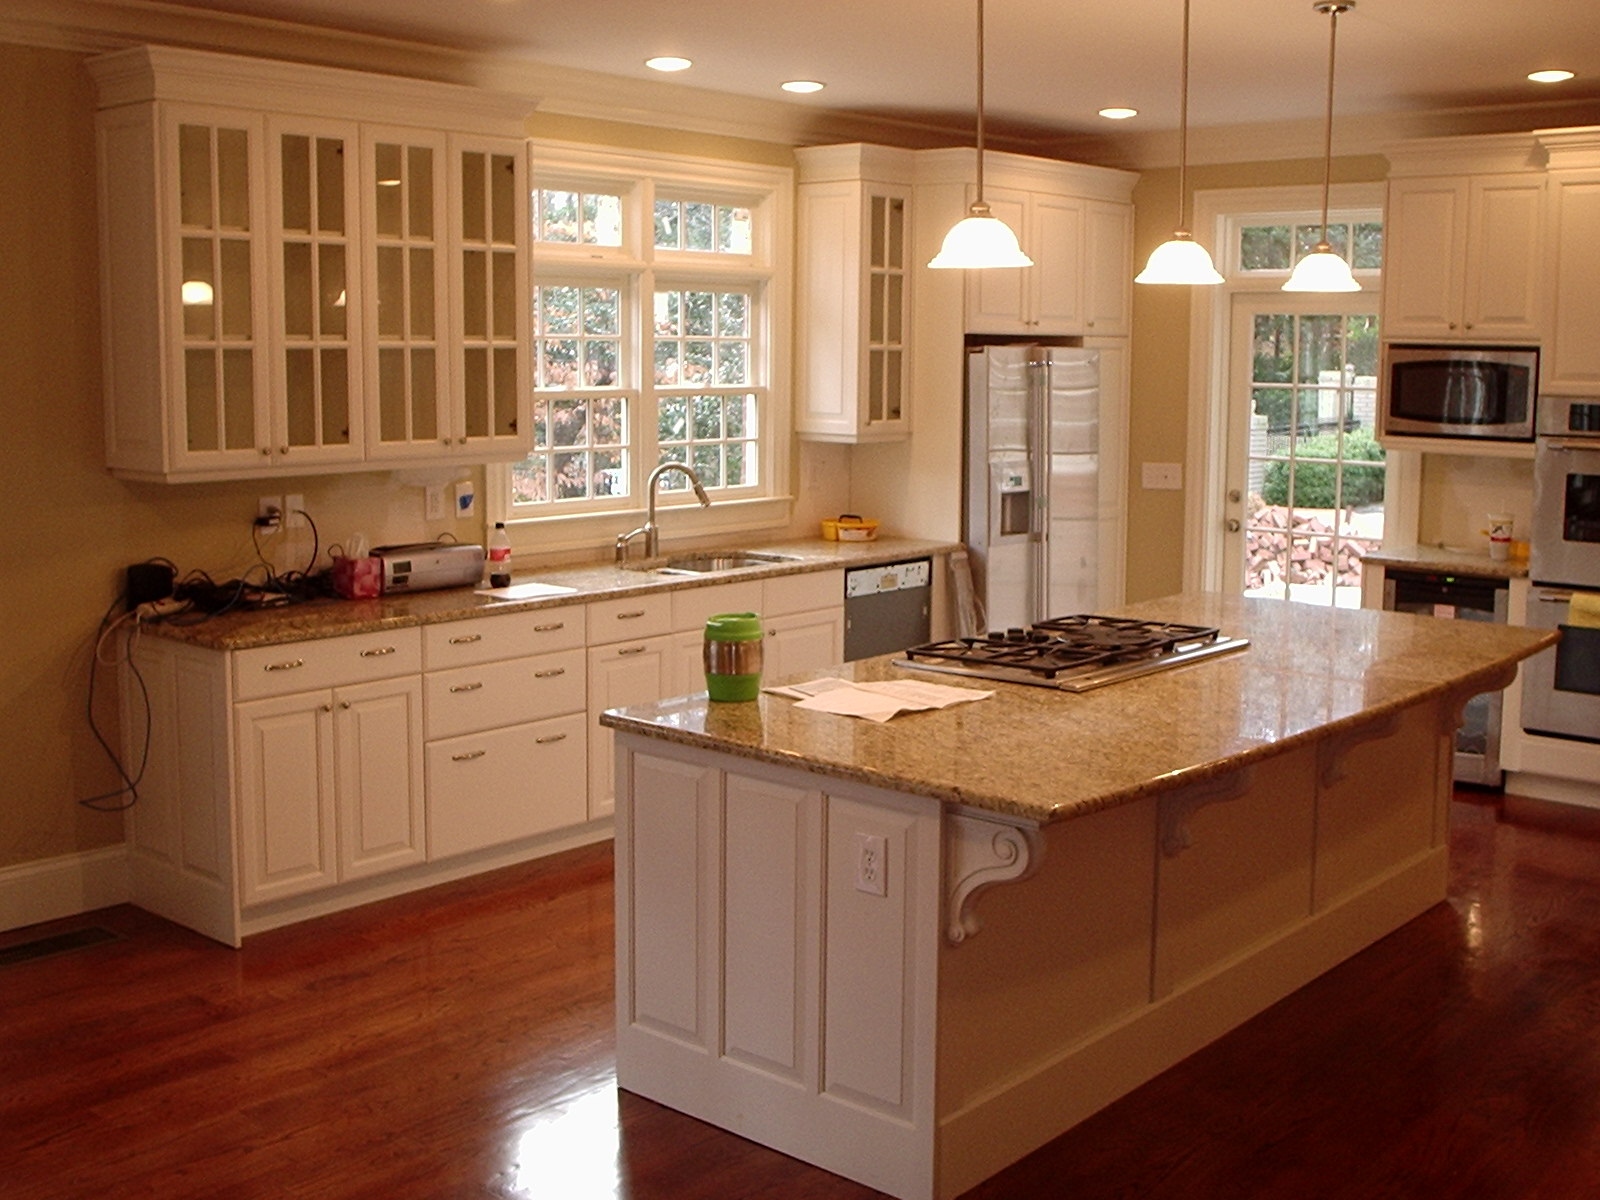 Kitchen cabinet with hutch Photo - 1